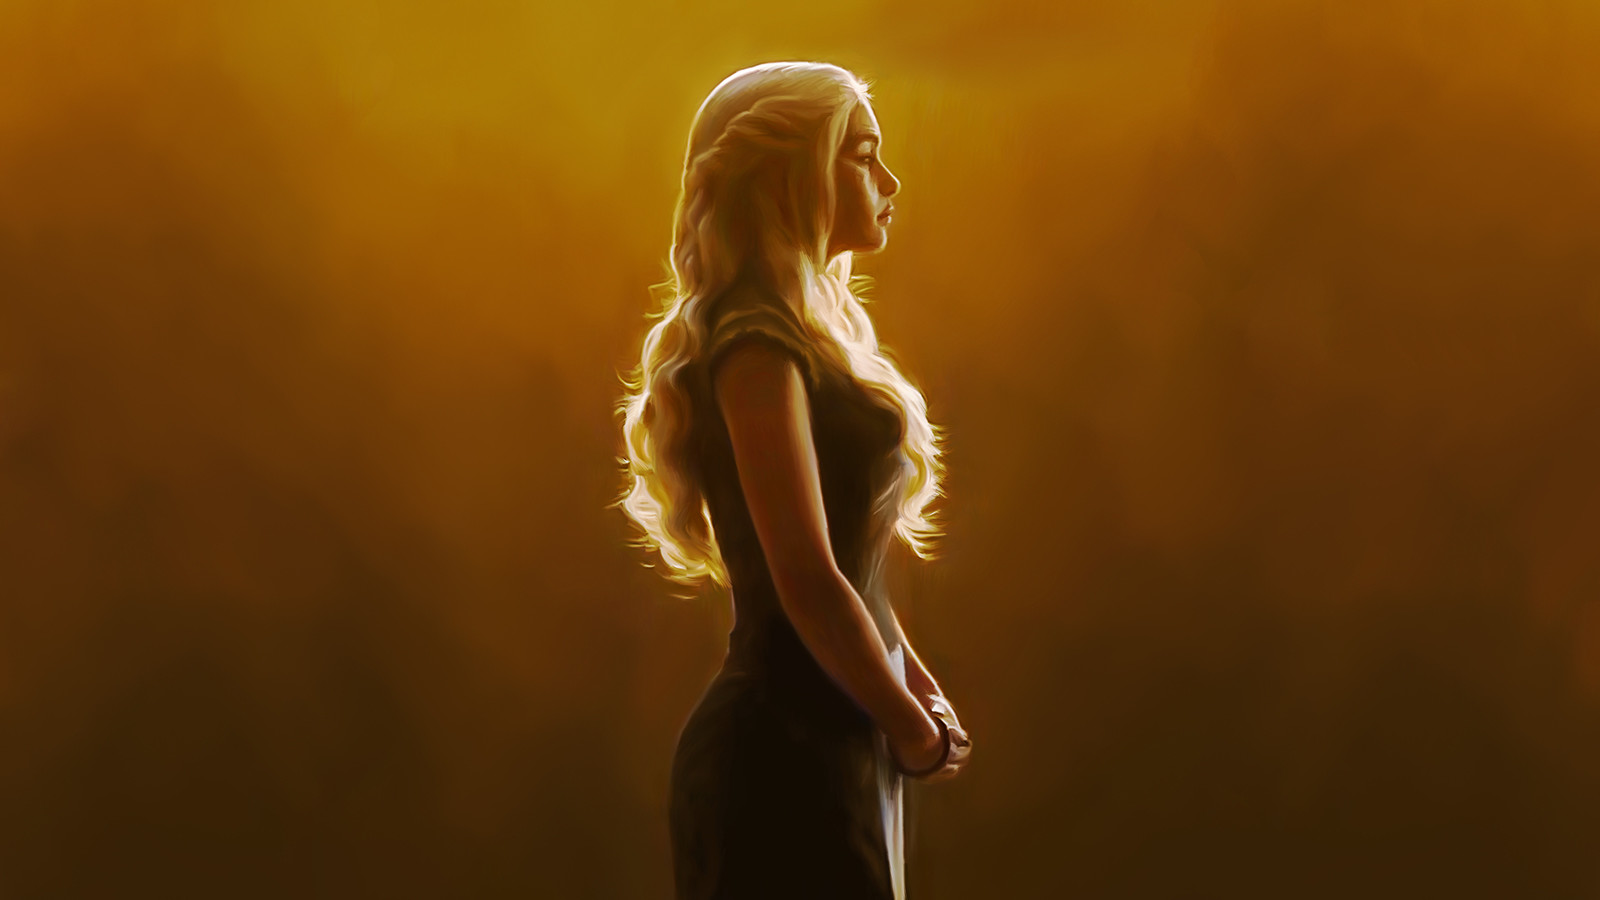 Vincent tanguay daenerys wallpaper